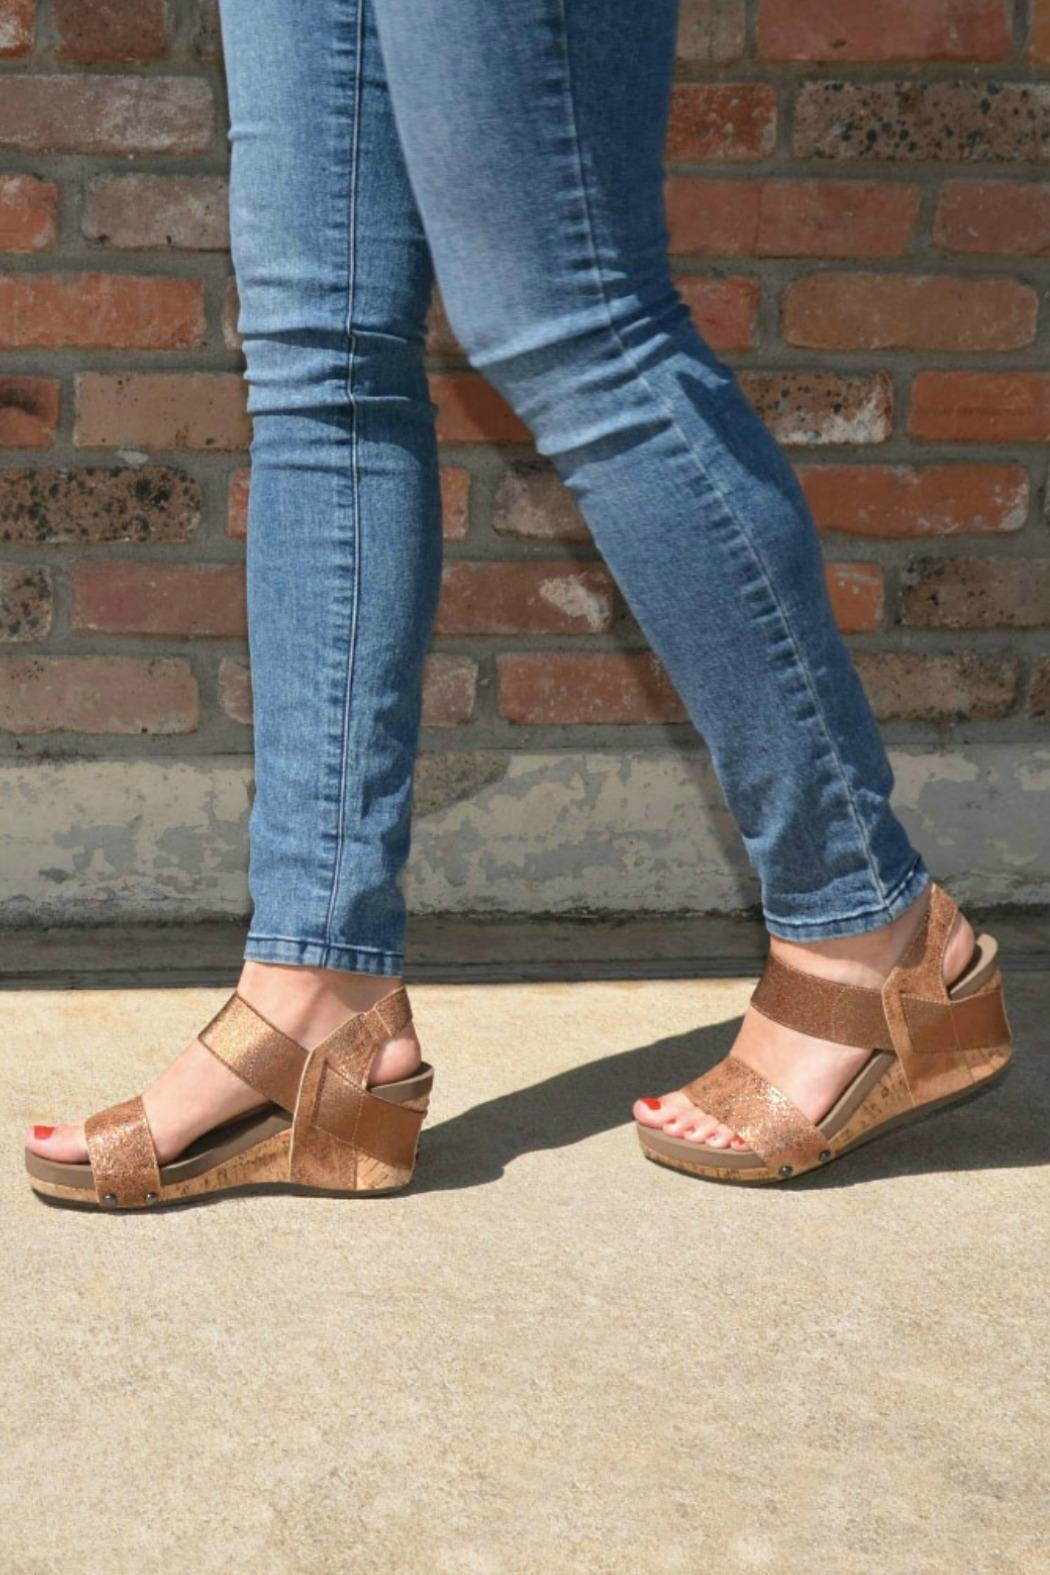 ea78ad4fd55 Corkys Bandit Wedge Sandal from California by Apricot Lane - Folsom ...